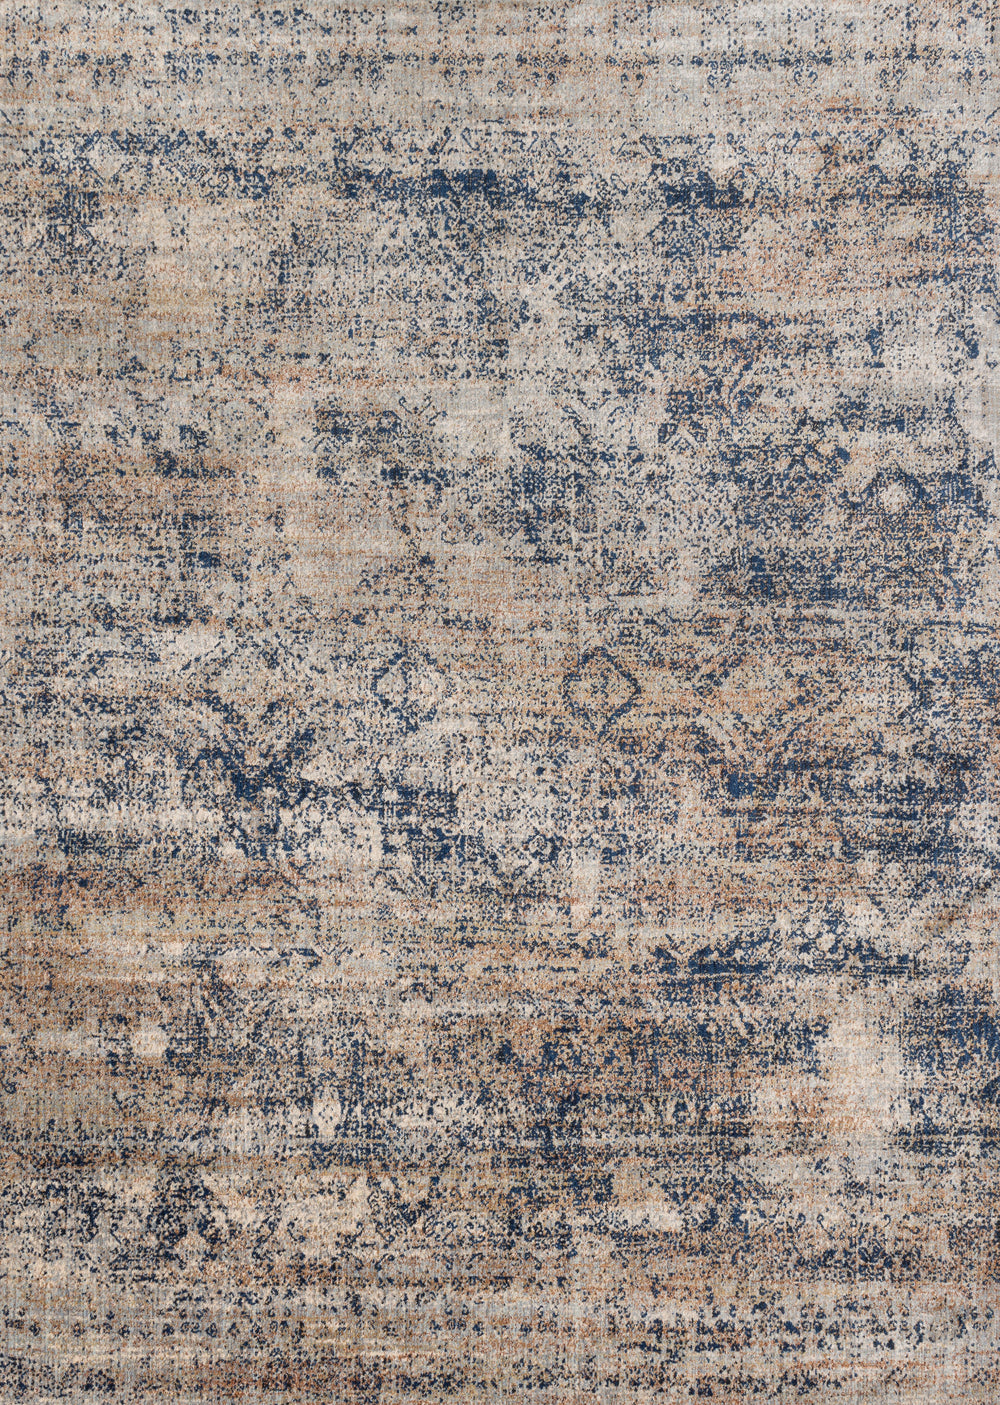 Ornate traditionals distressed and full of character are modernized by illuminating color-ways in the Anastasia collection. Anastasia not only is durable and easy care but gives the appearance of being a fine rug made by hand. The intricate detail, luster of colors, and unbeatable price point establish the value of this outstanding collection.  Power Loomed 75% Polypropylene | 25% Polyester AF-13 Mist/Blue